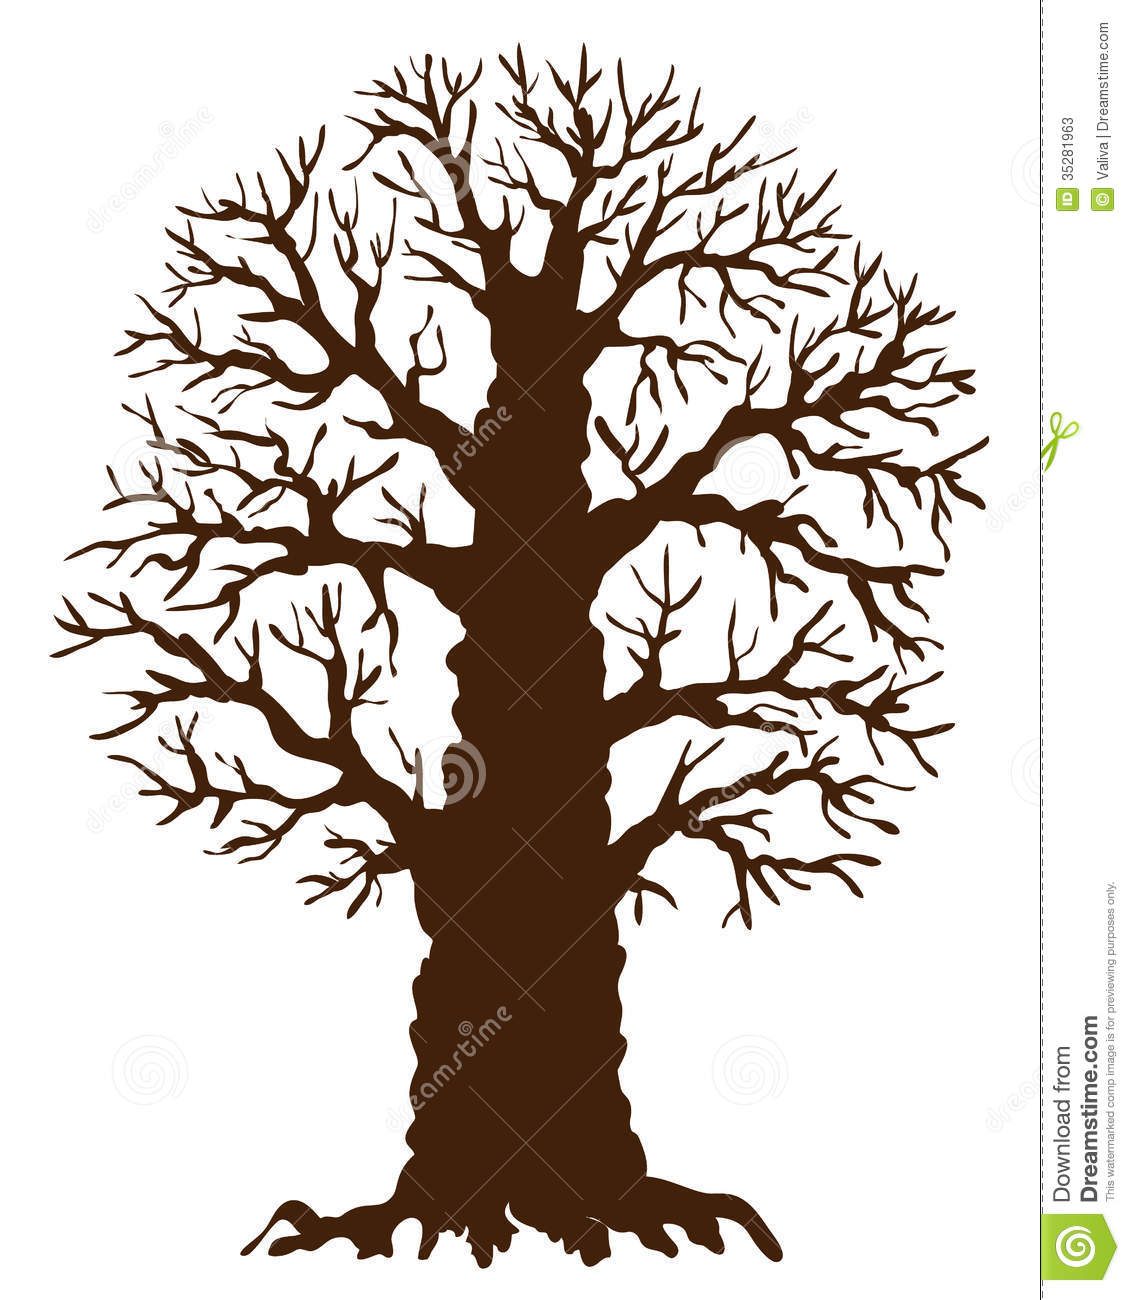 Simple Tree Without Leaves Clip Art Silhouette of oak tree with no